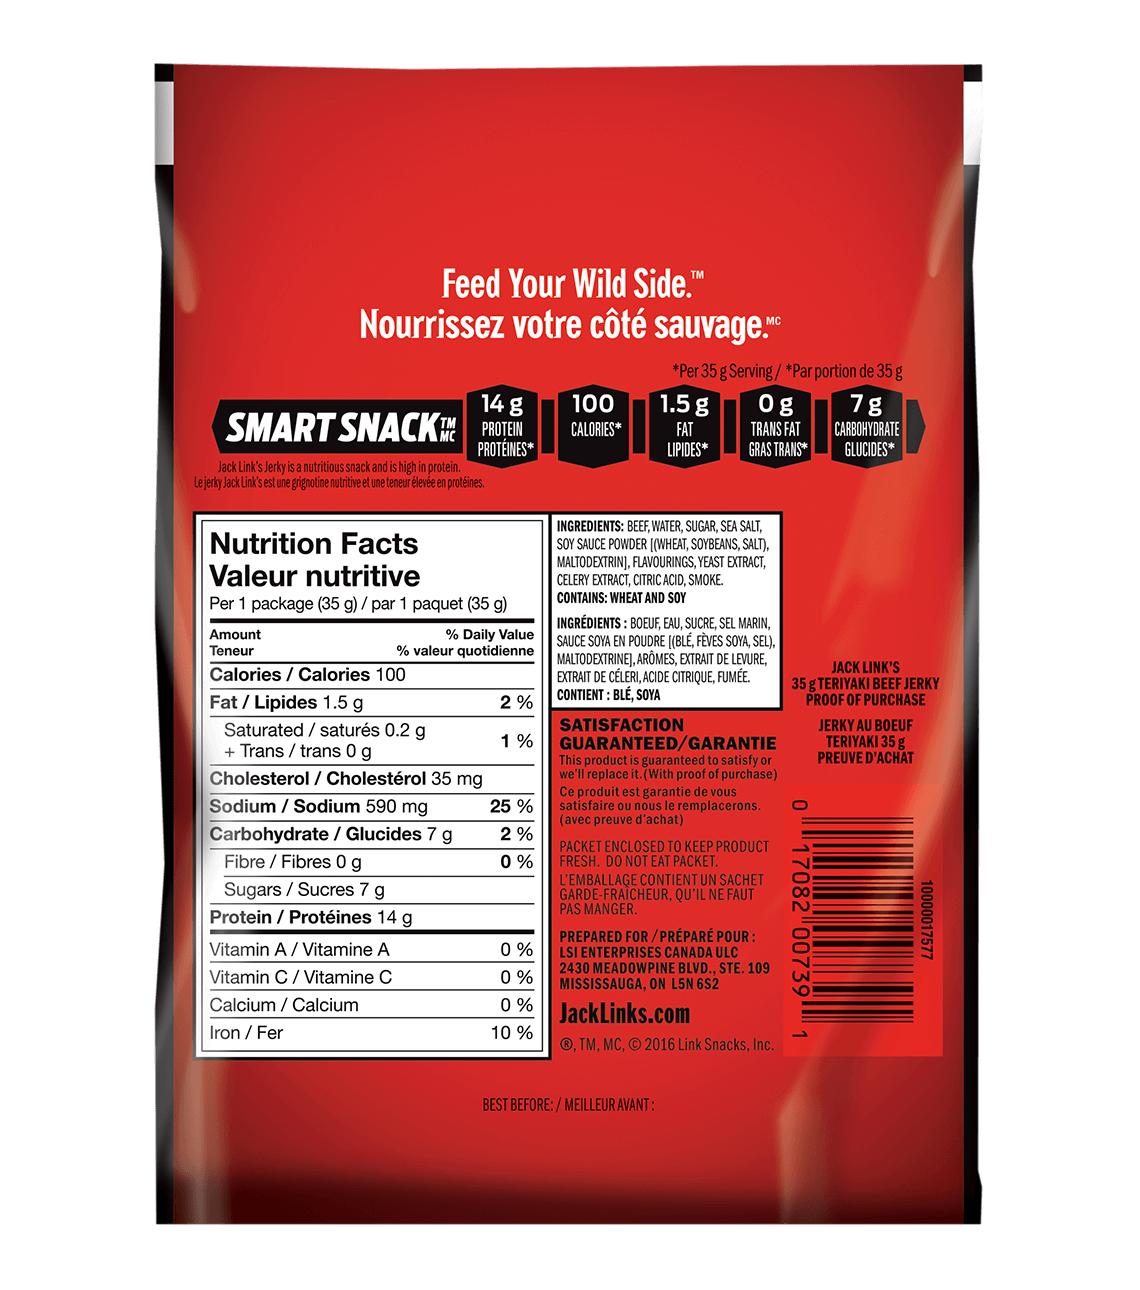 Photo of back of packaging for Jack Link's Teriyaki Jerky 35g grams